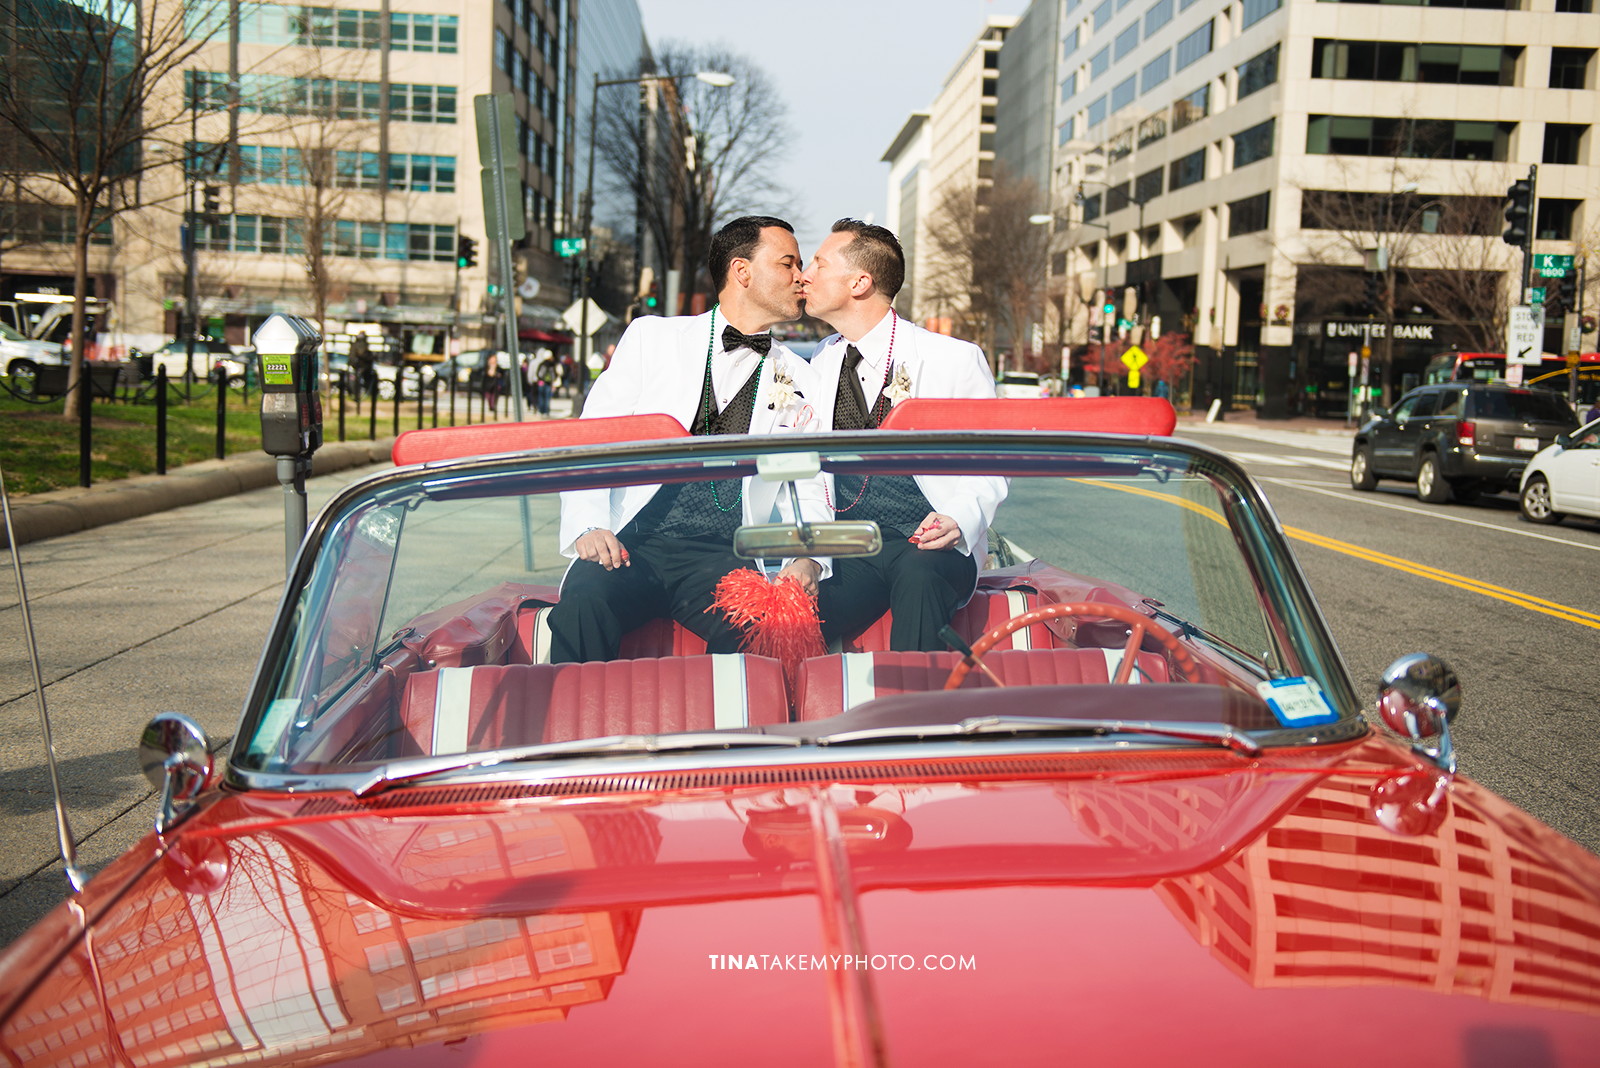 13-Washington-DC-Virginia-Gay-Same-Sex-Wedding-Men-12-13-14-Red-Covertable-Kiss-City-Street-Photographer